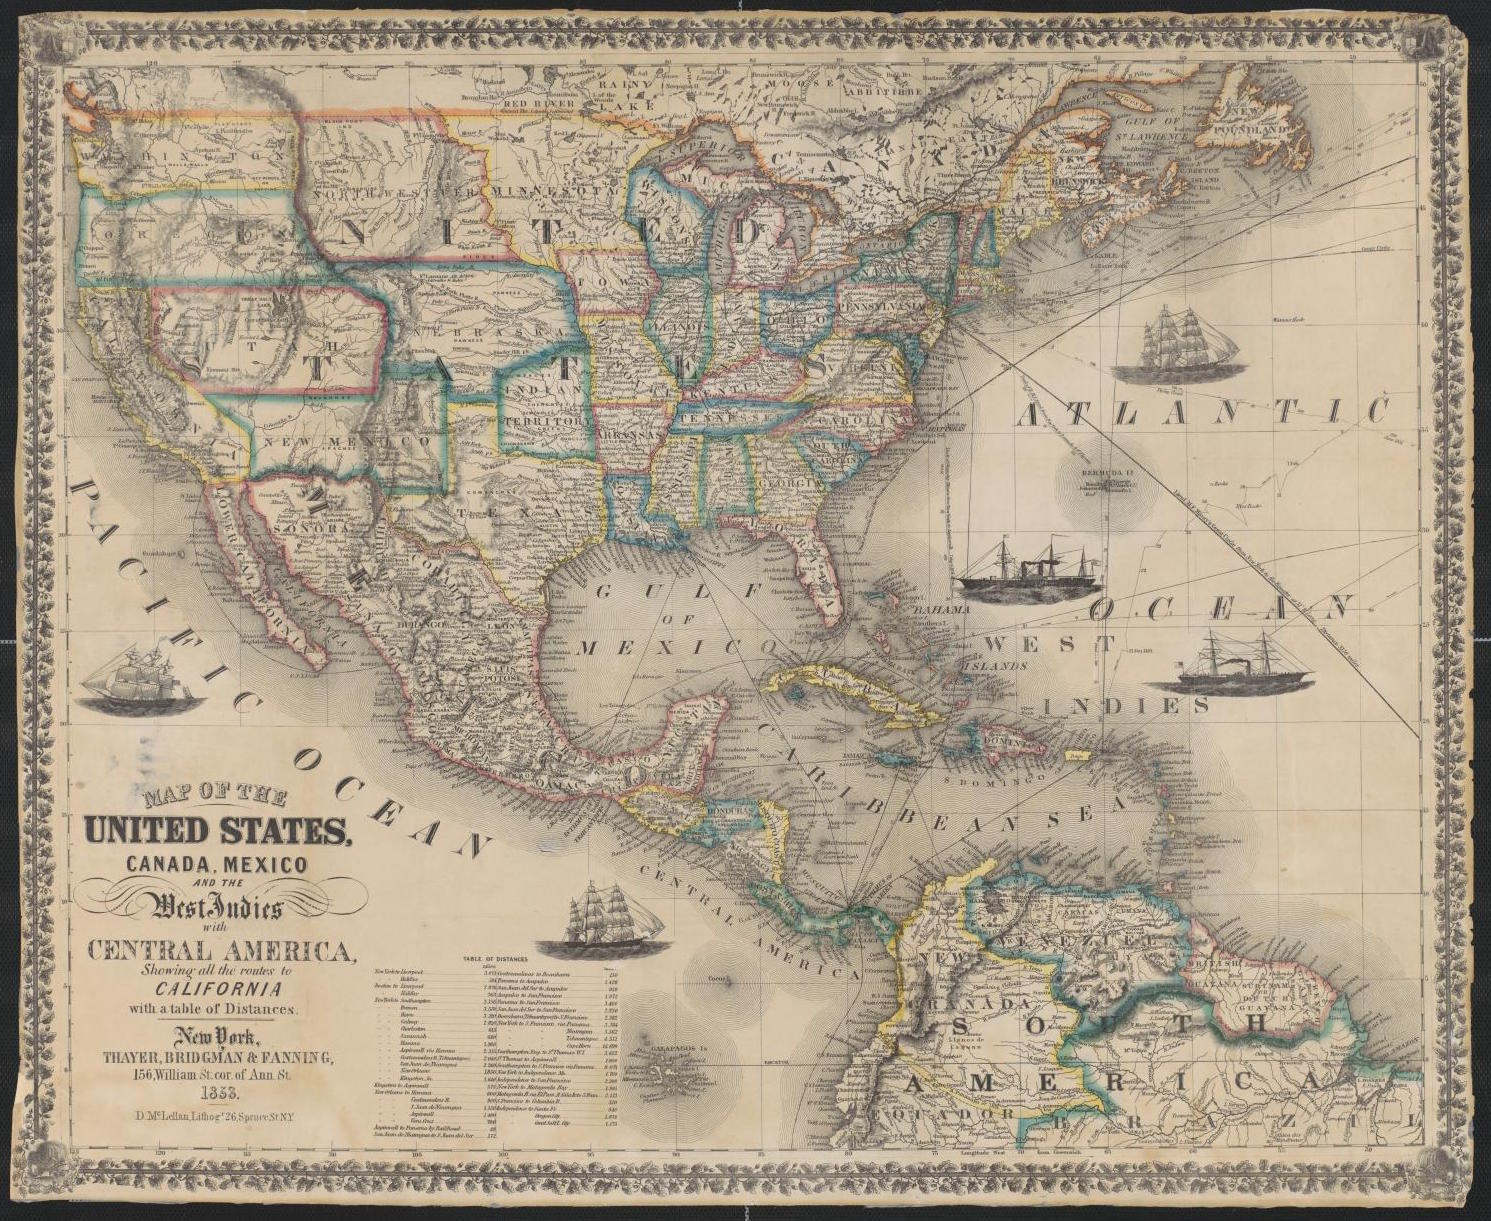 Map of the United States, Canada, Mexico and the West Indies with Central America